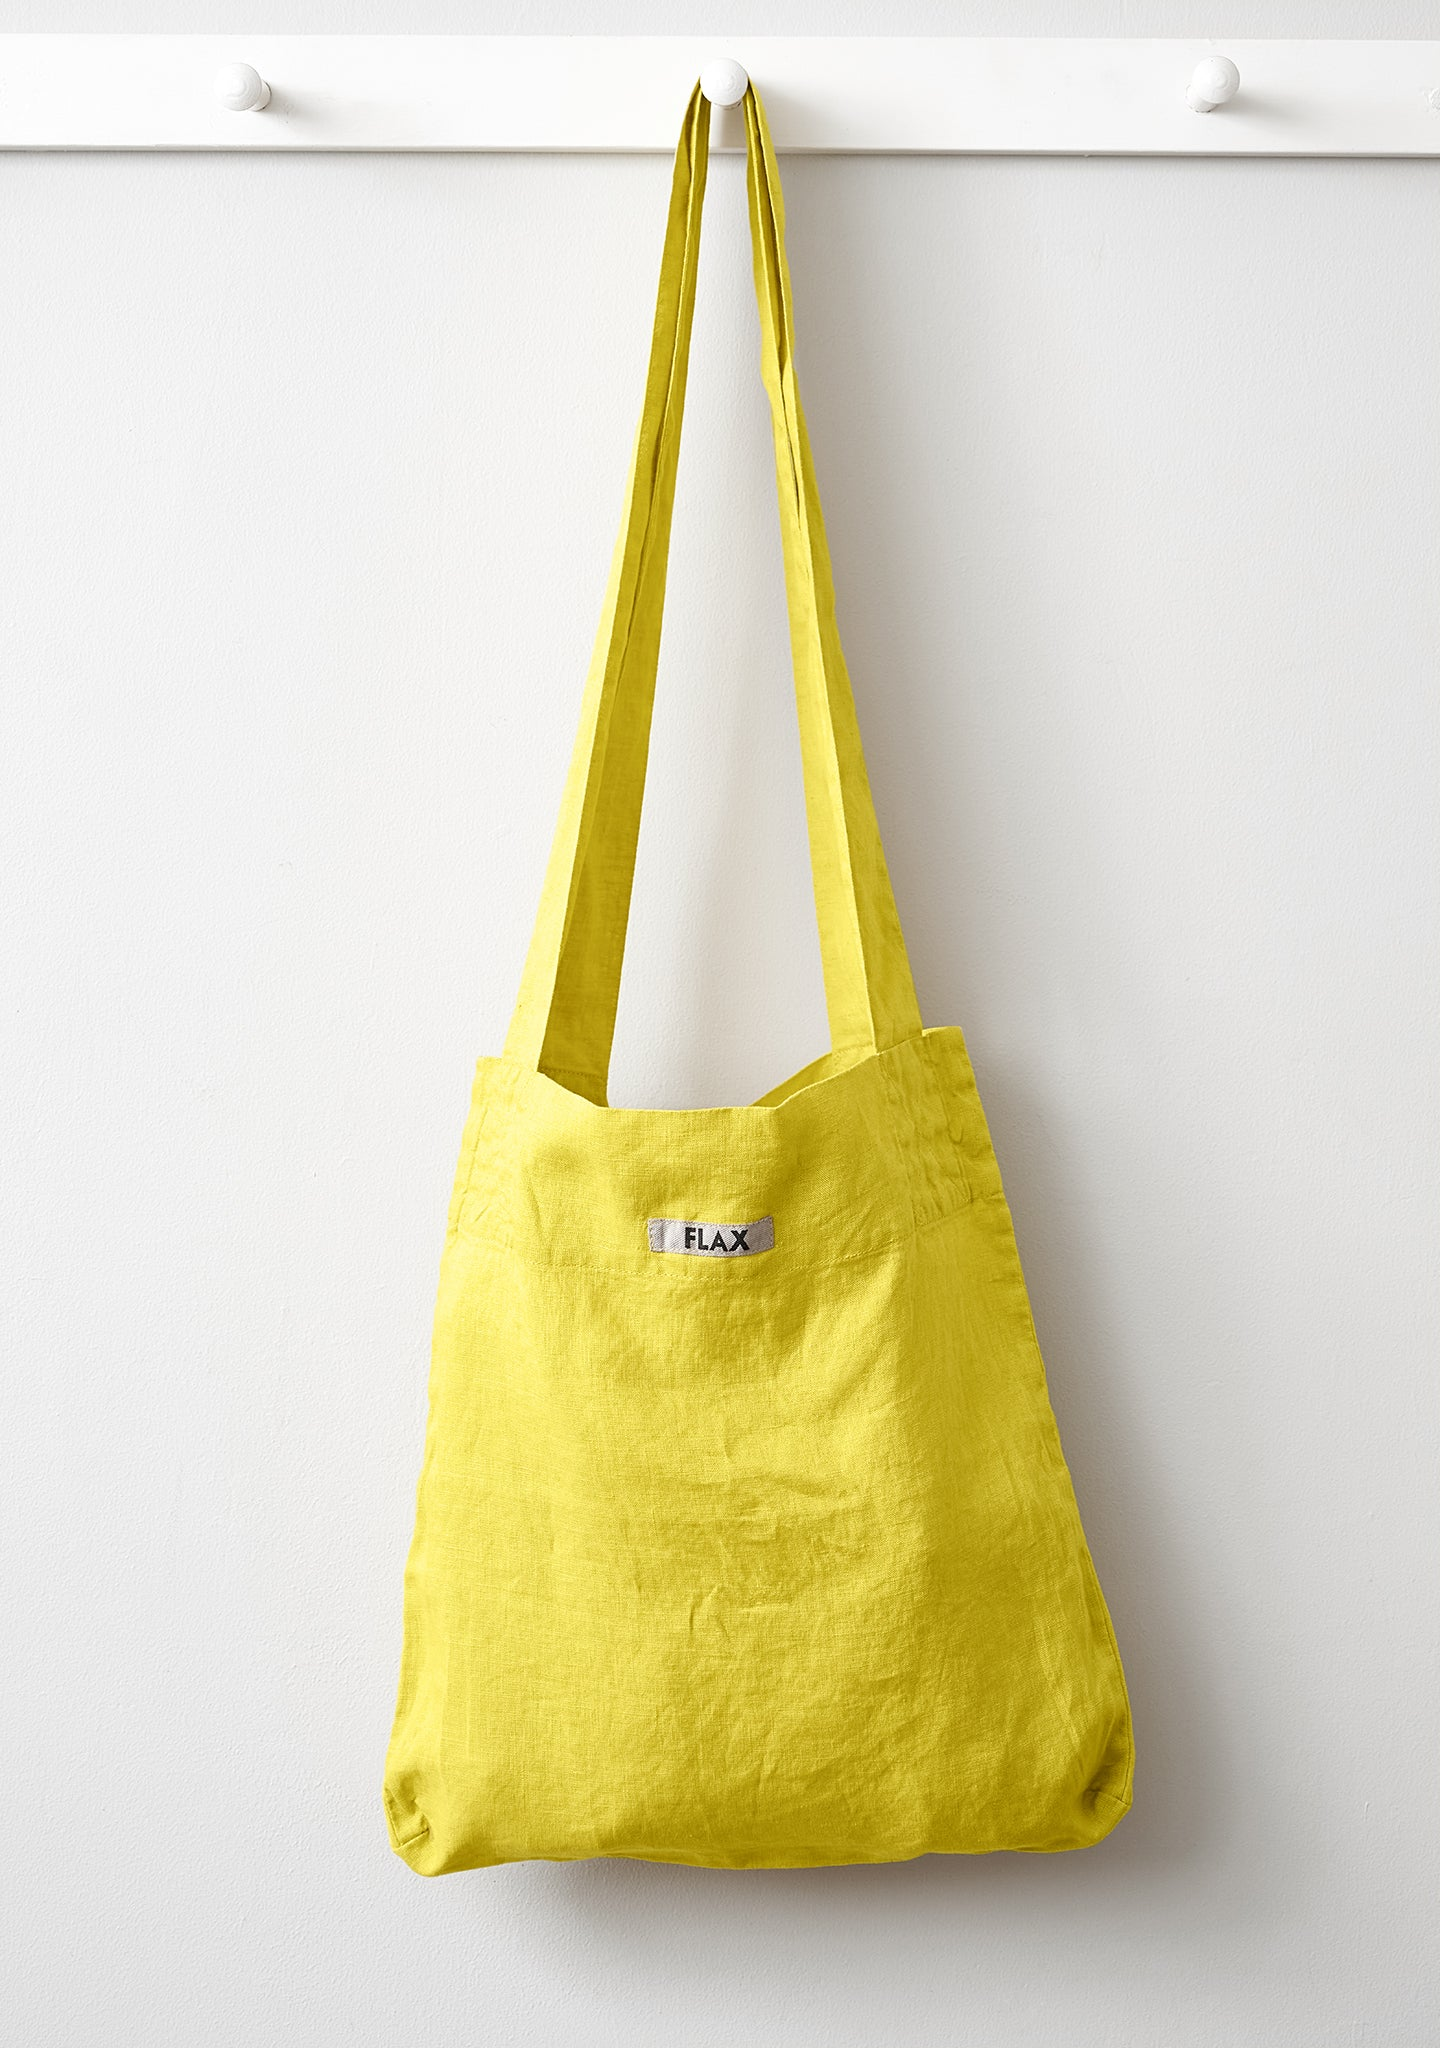 the bag linen shopping bag yellow